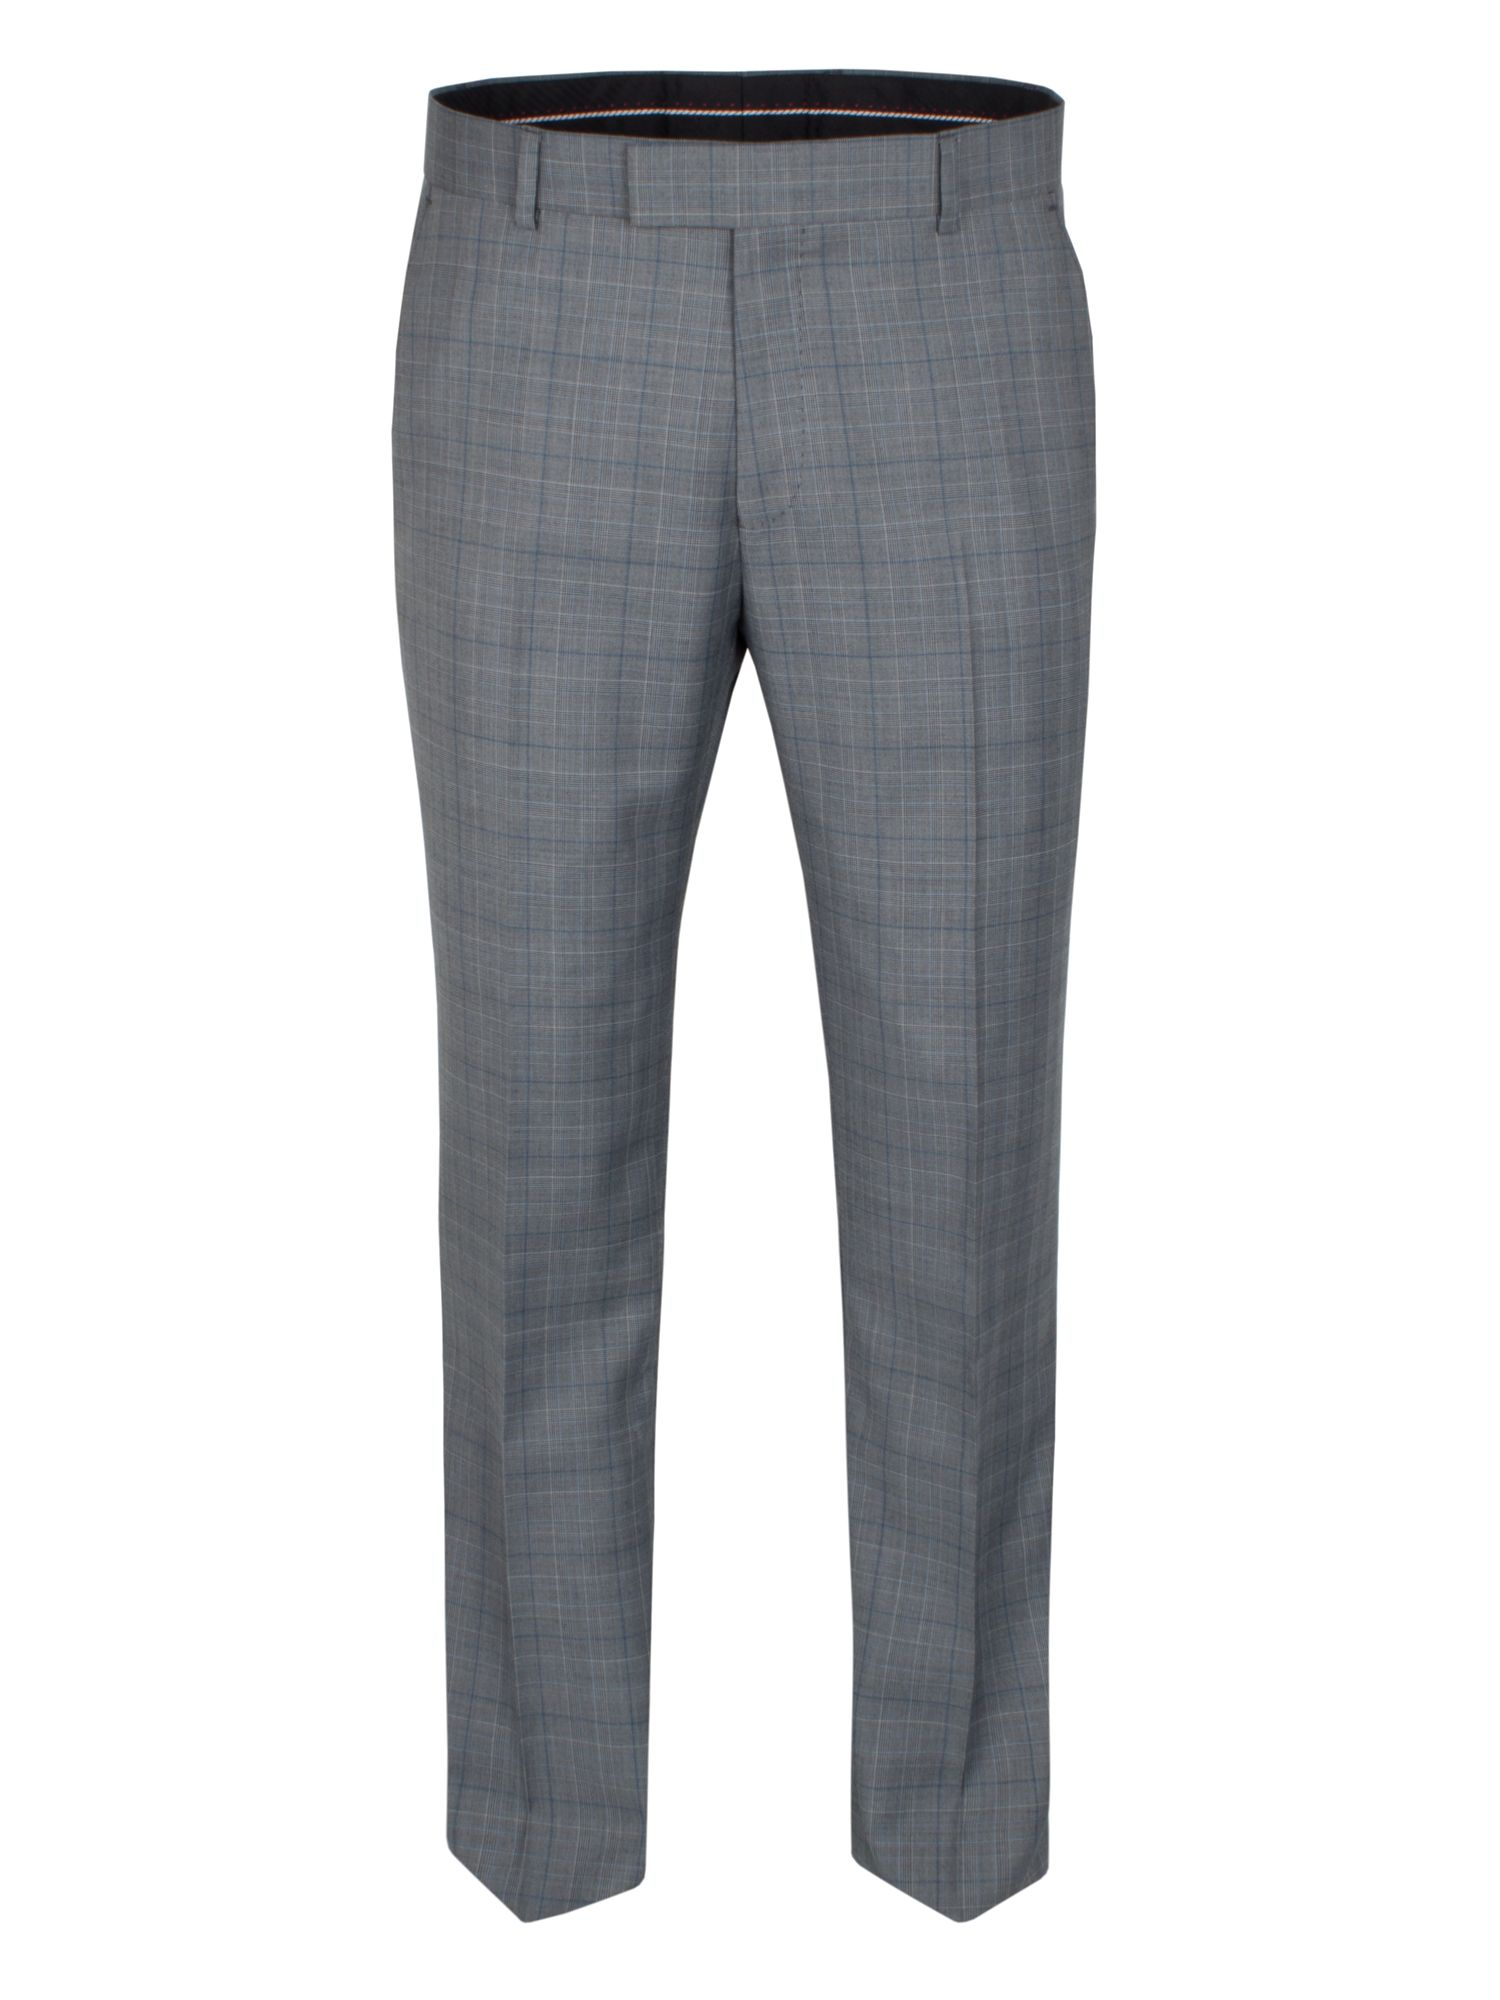 Grey teal check trouser